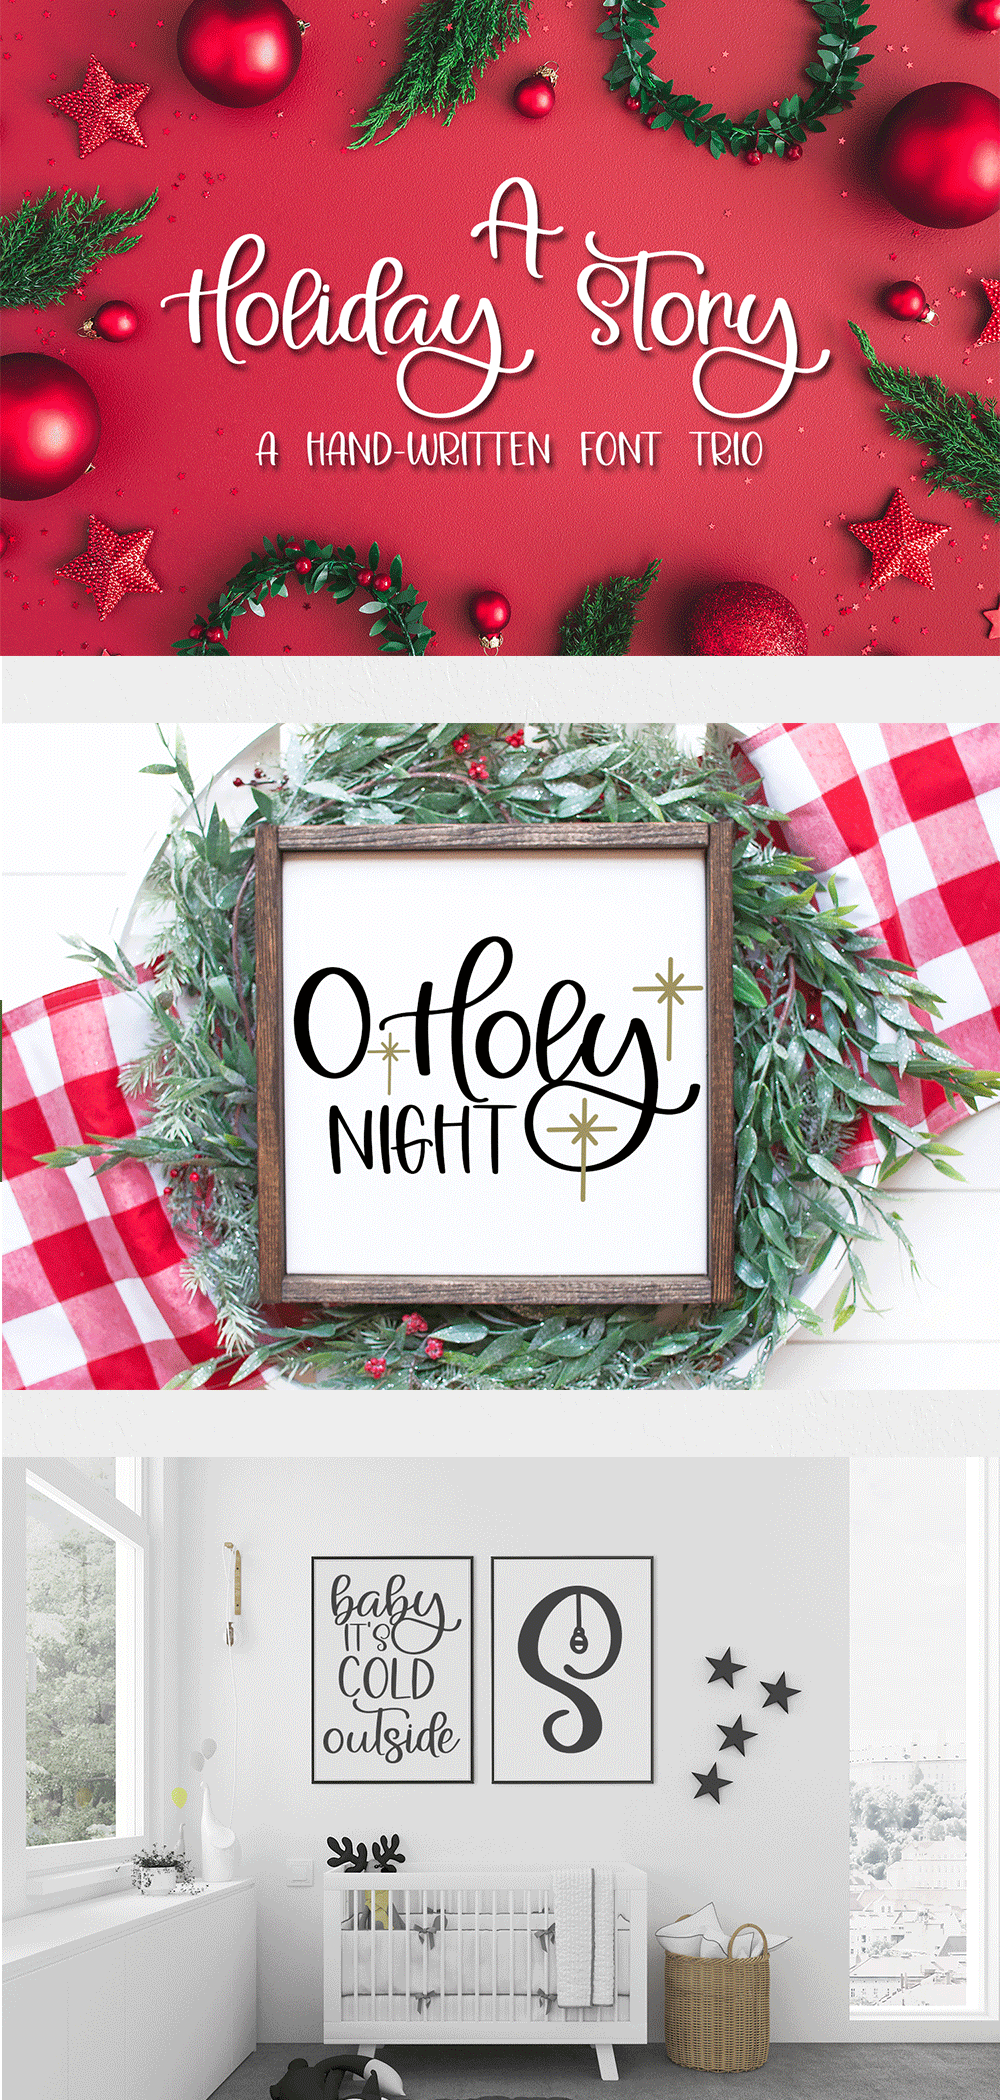 A Holiday Story - A Christmas Hand-Written Font Trio example image 11